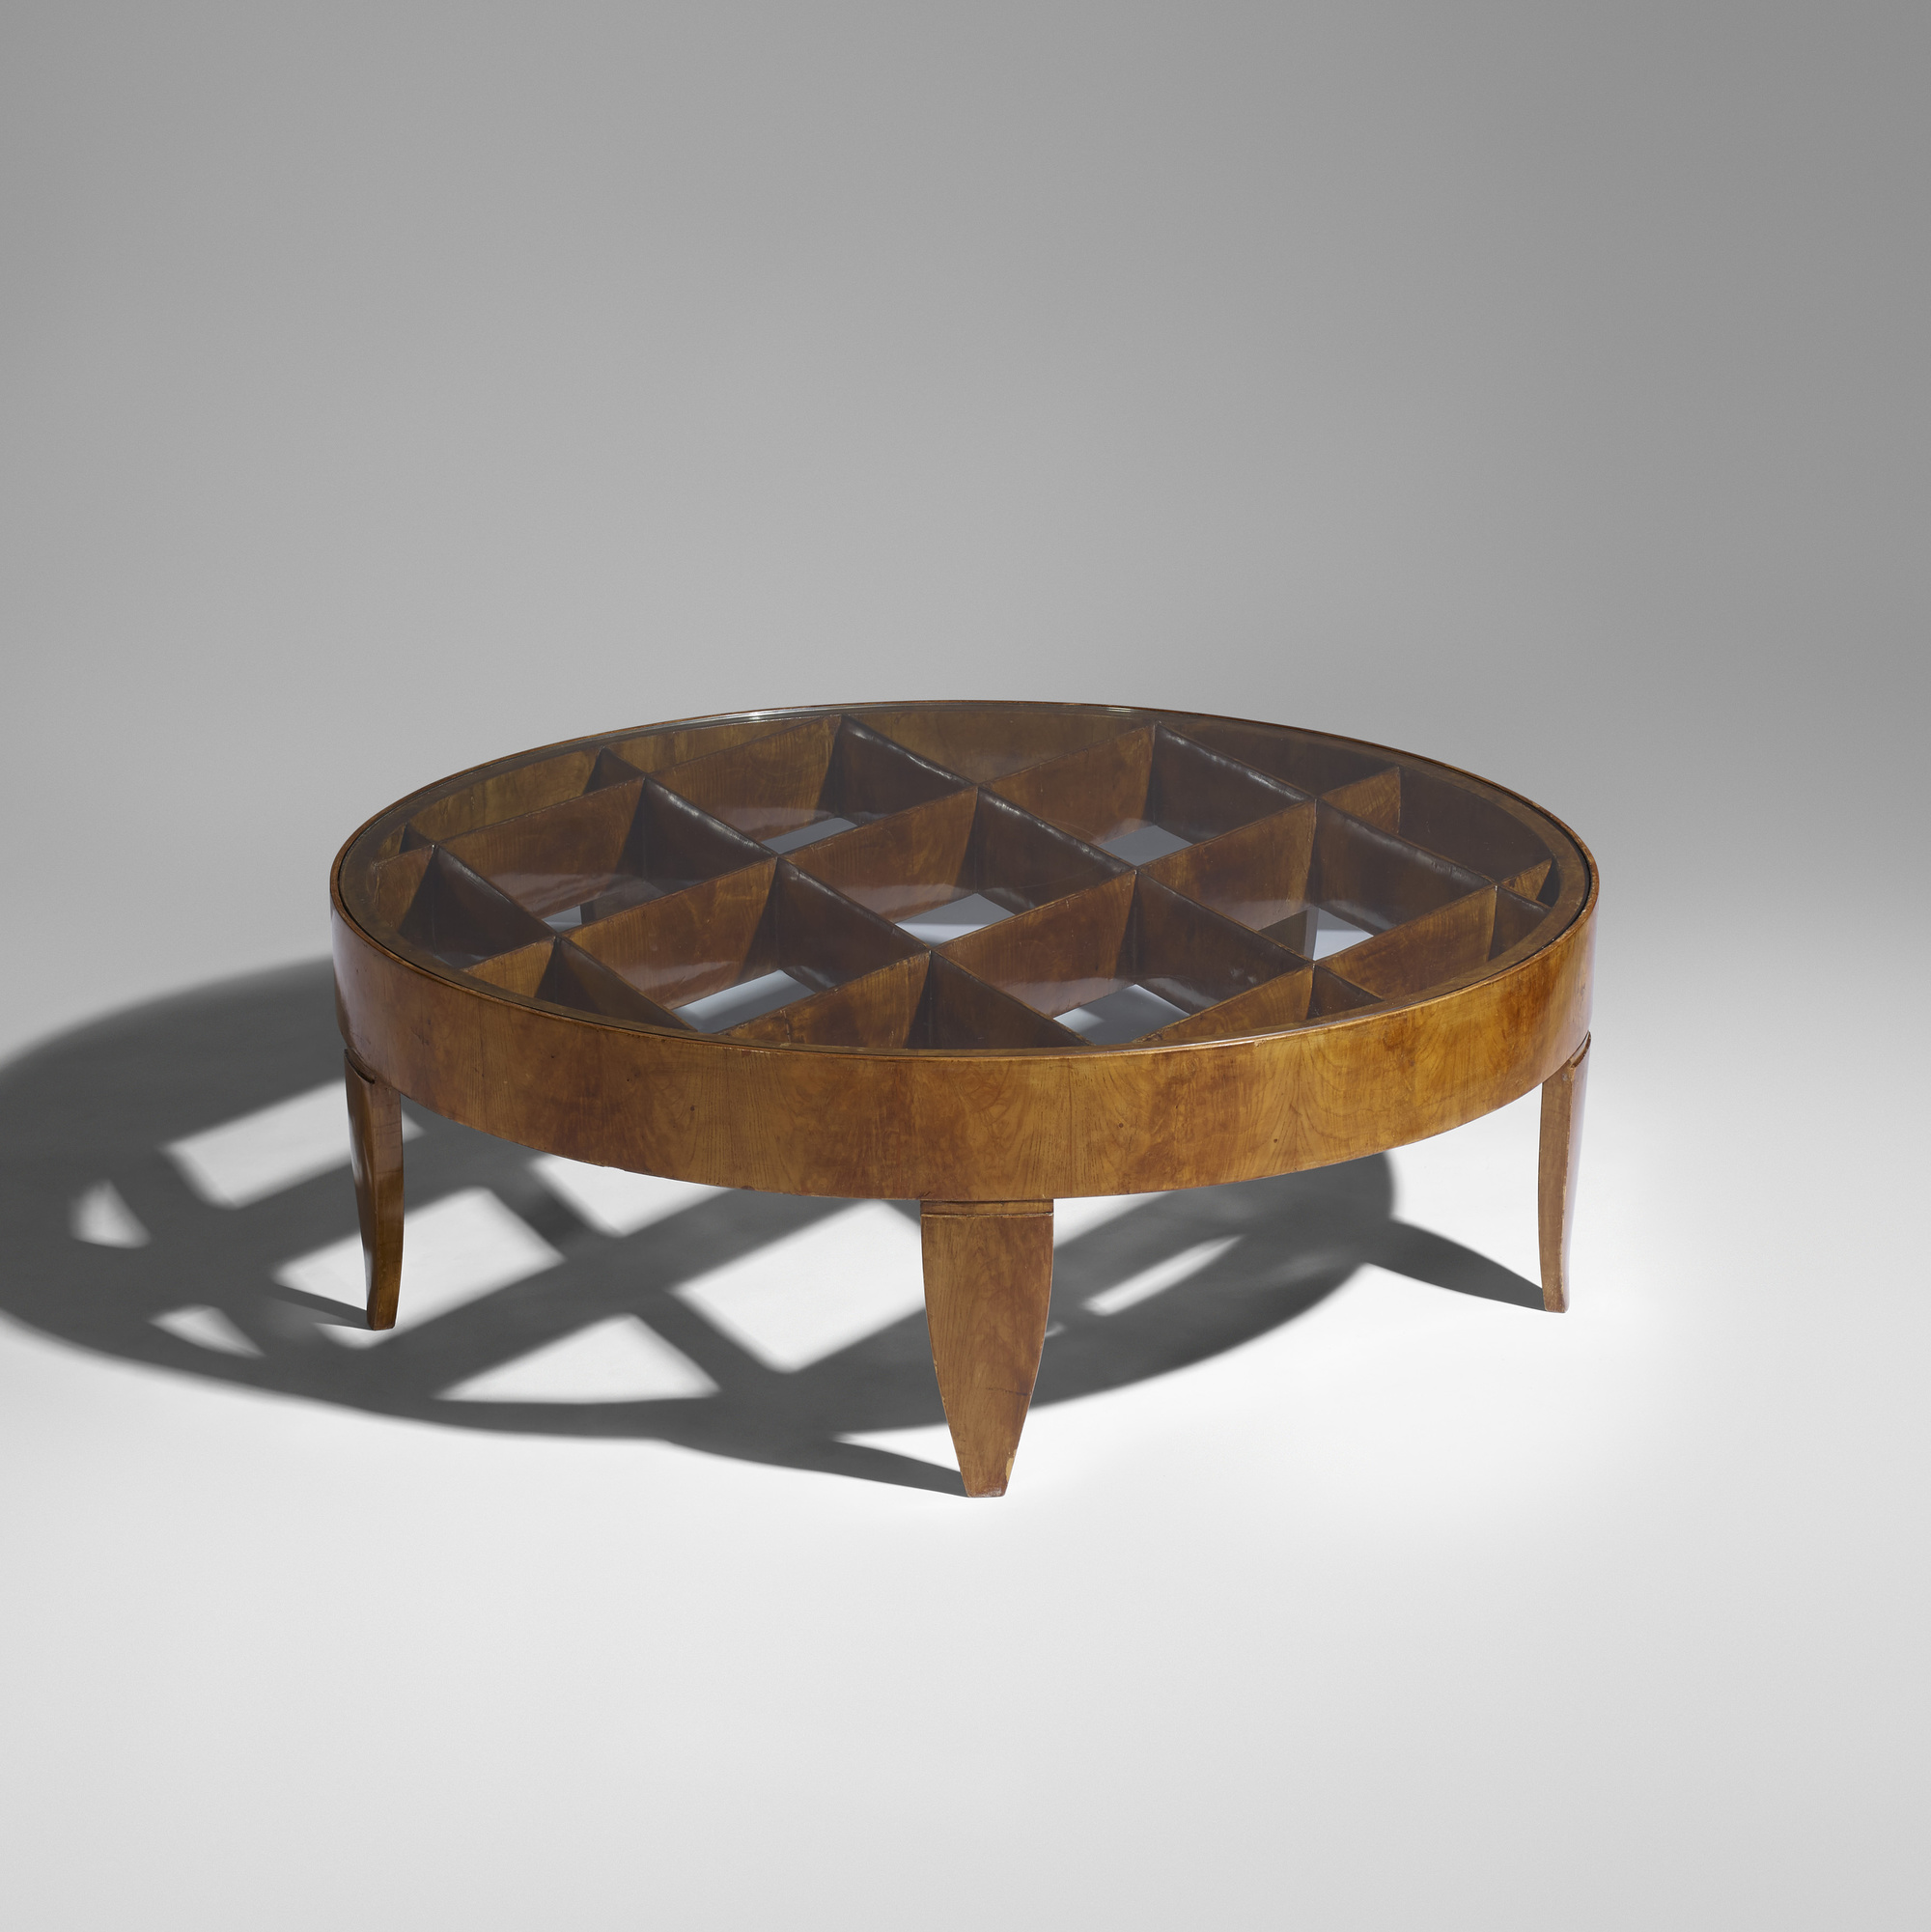 14 Gio Ponti Rare Coffee Table